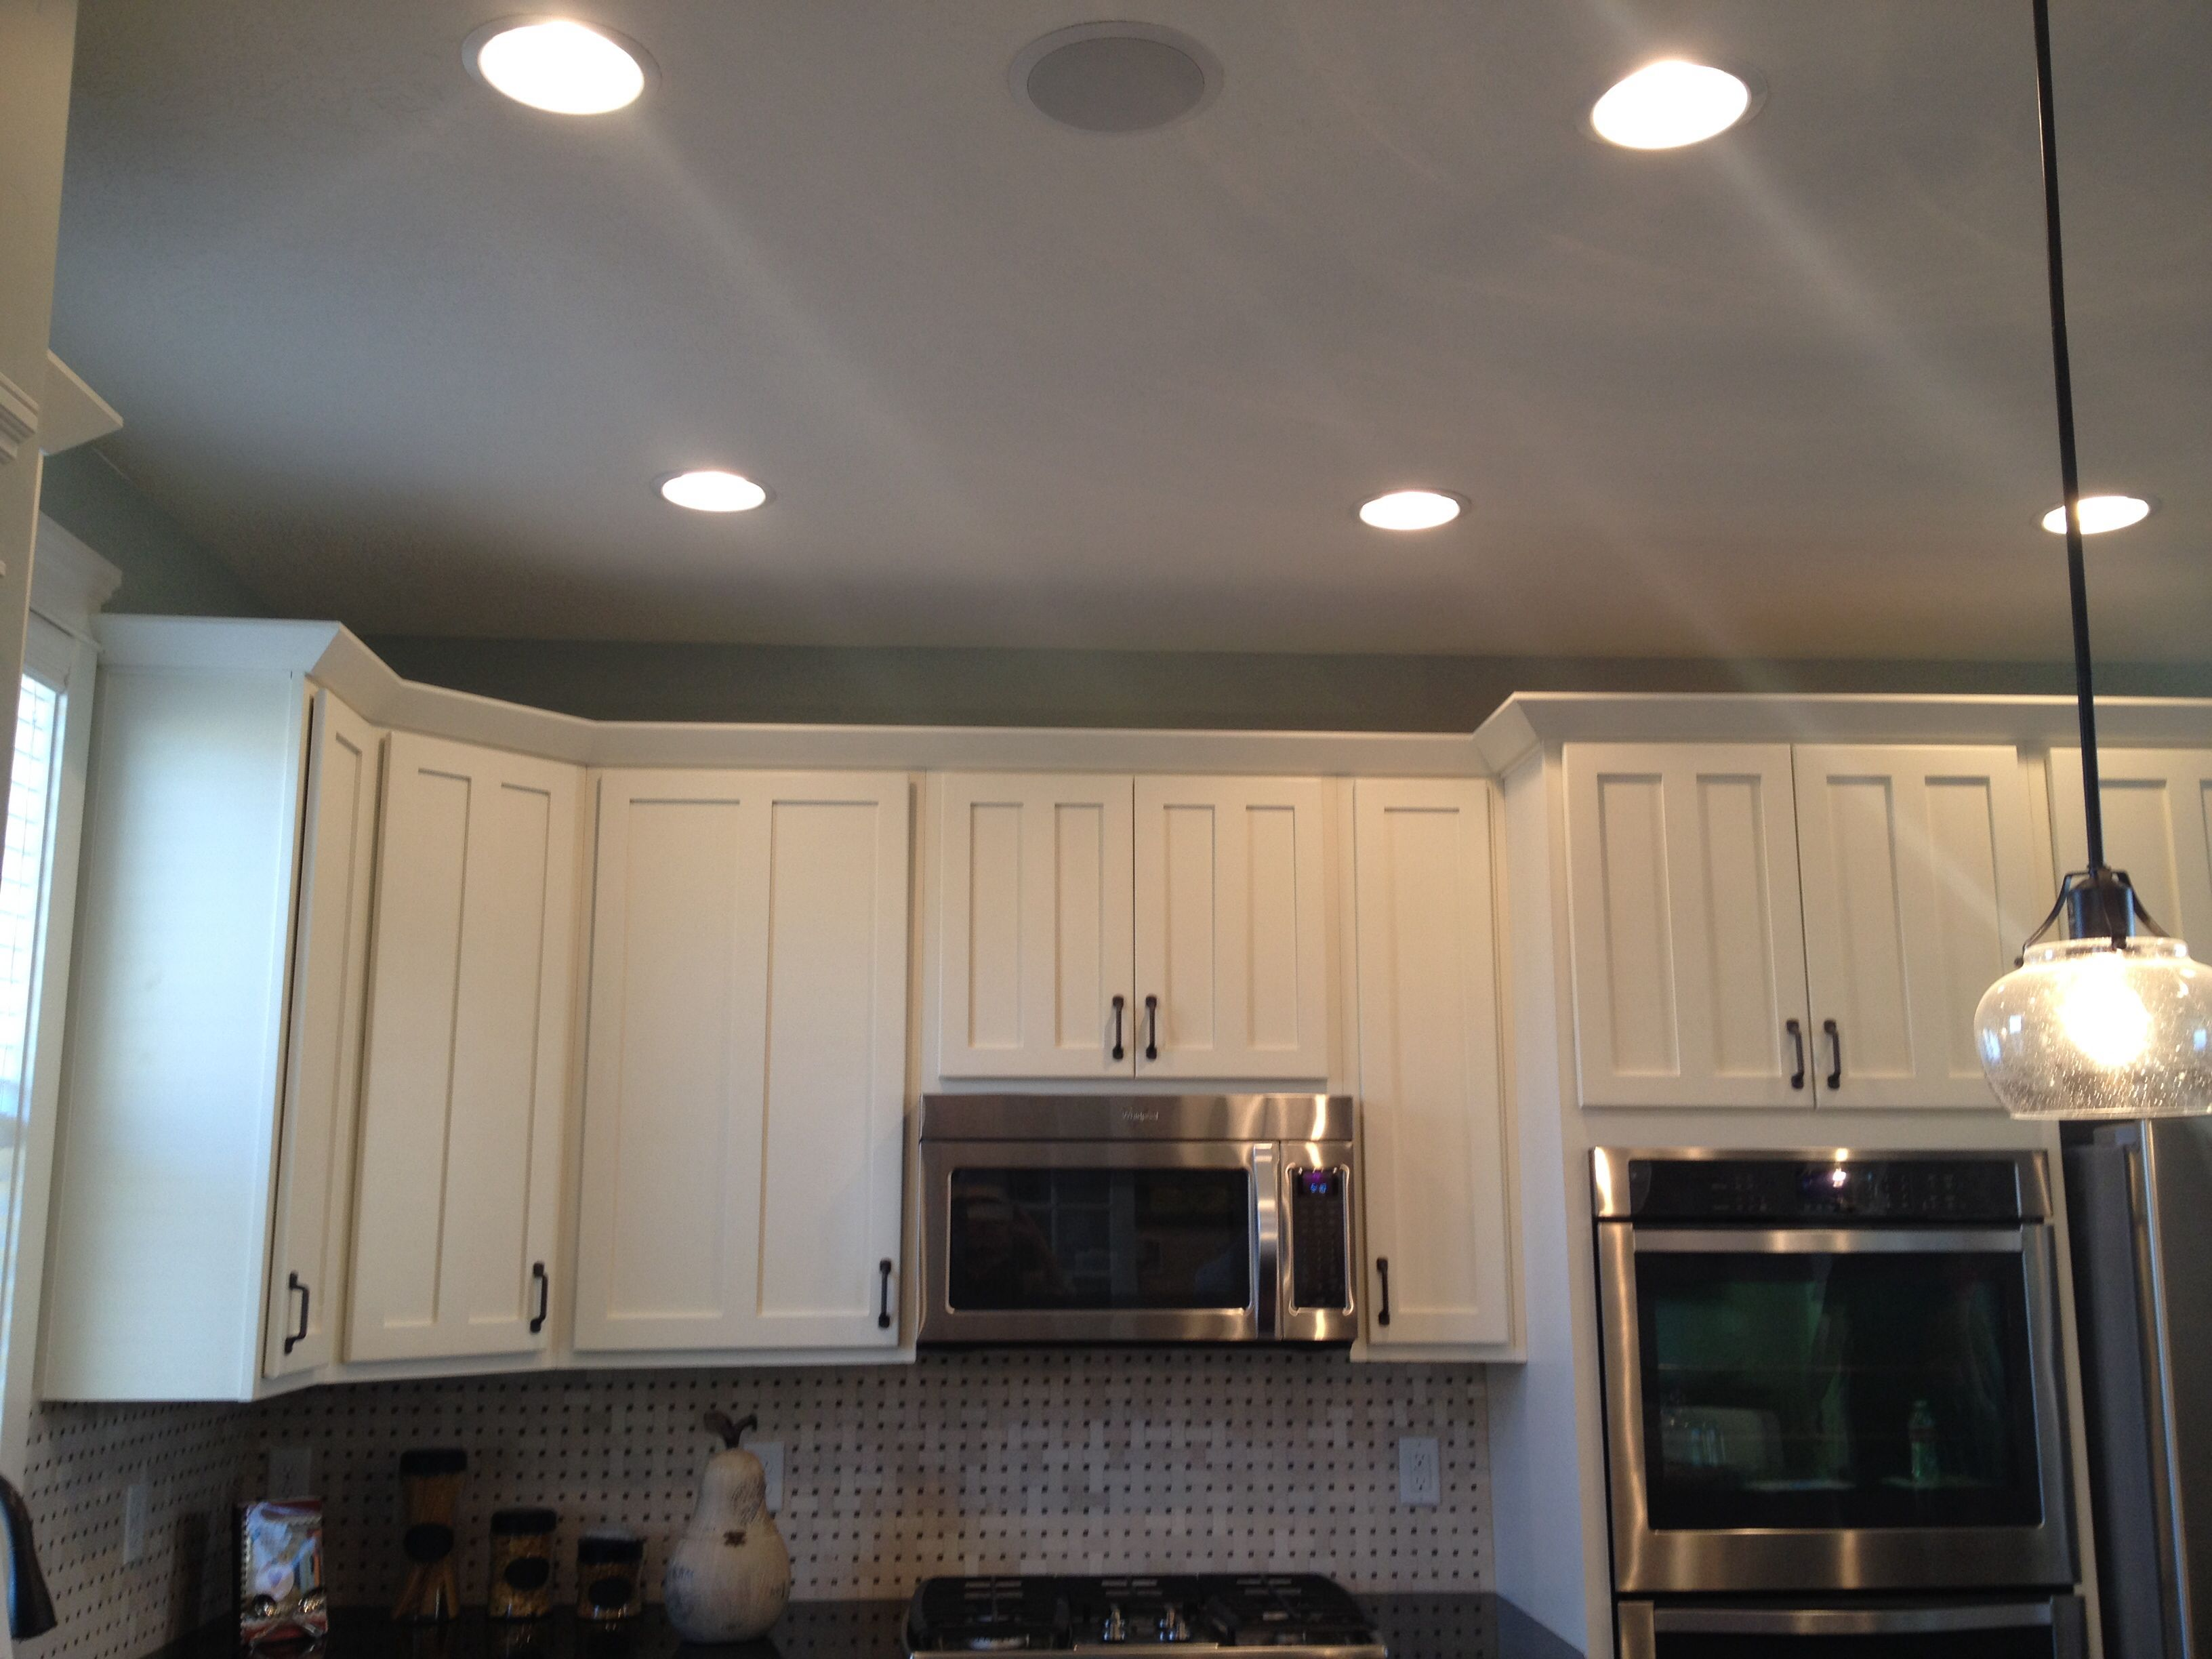 Crown molding on cabinets kitchen design ideas pinterest for Kitchen cabinets crown molding ideas